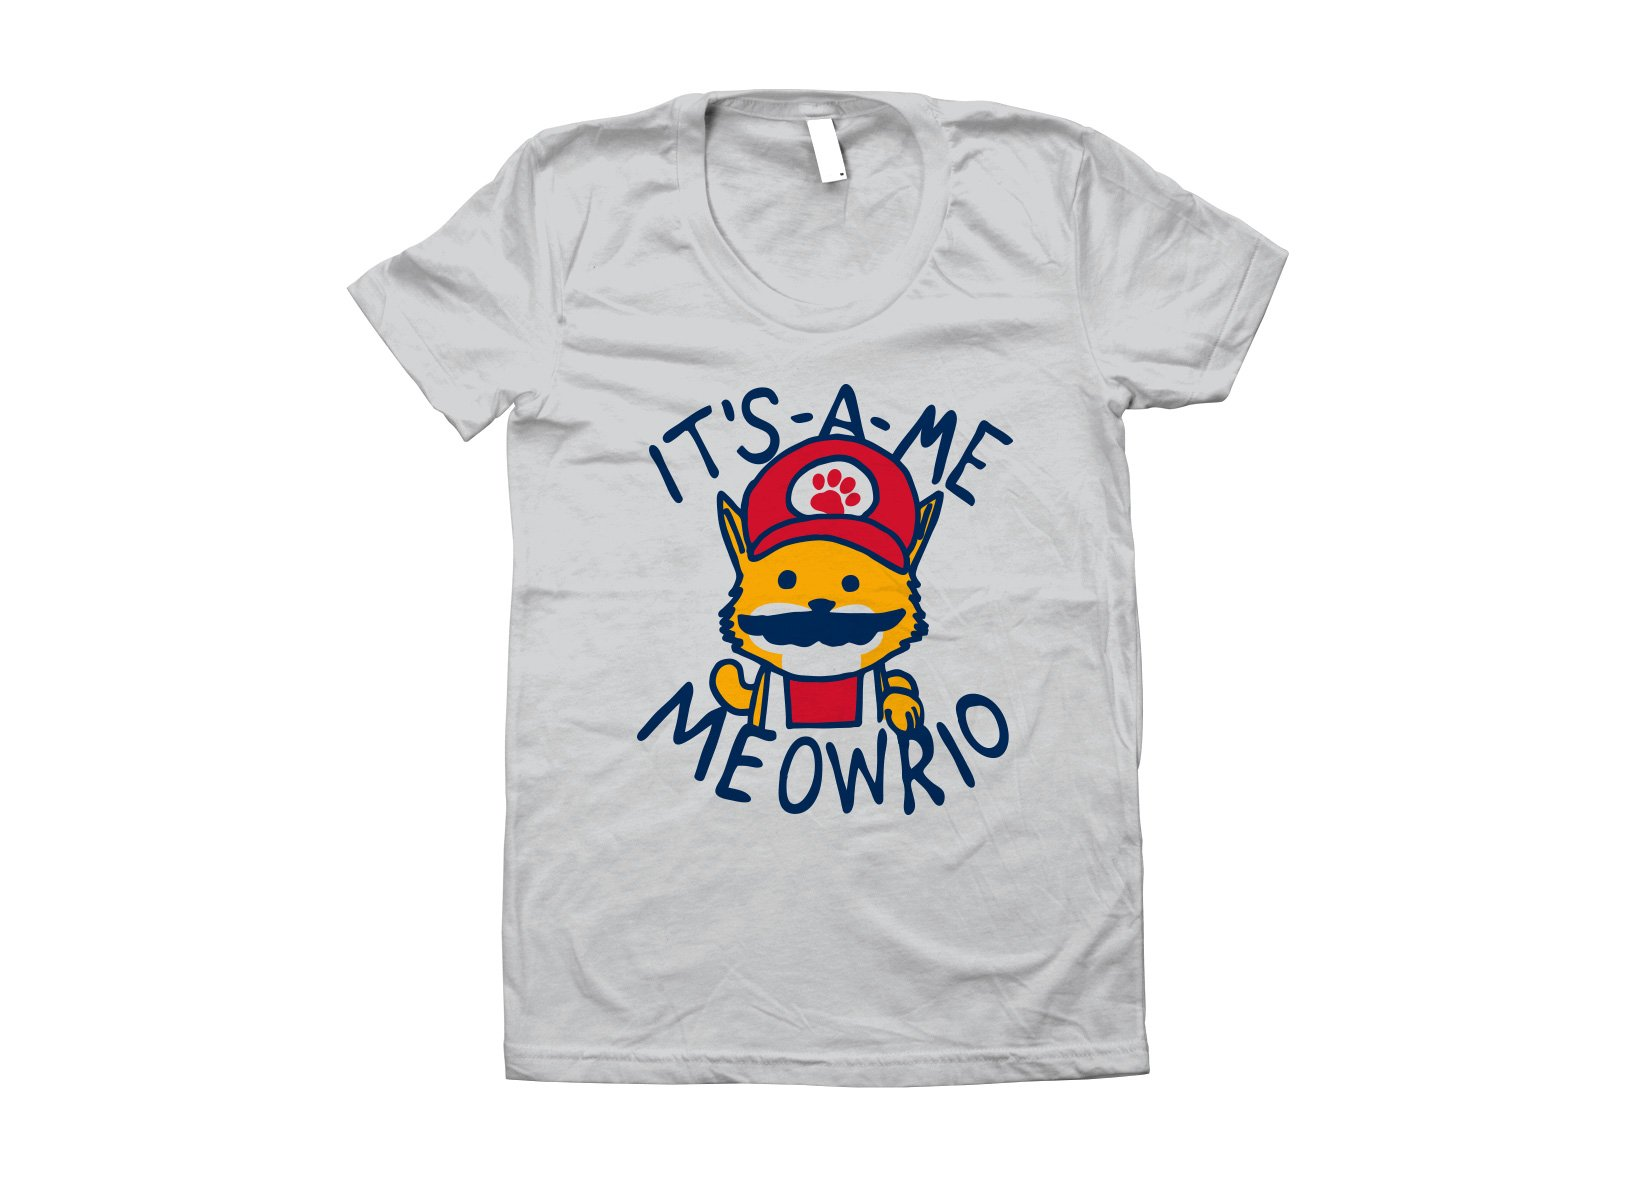 It's-a-me Meowrio on Juniors T-Shirt